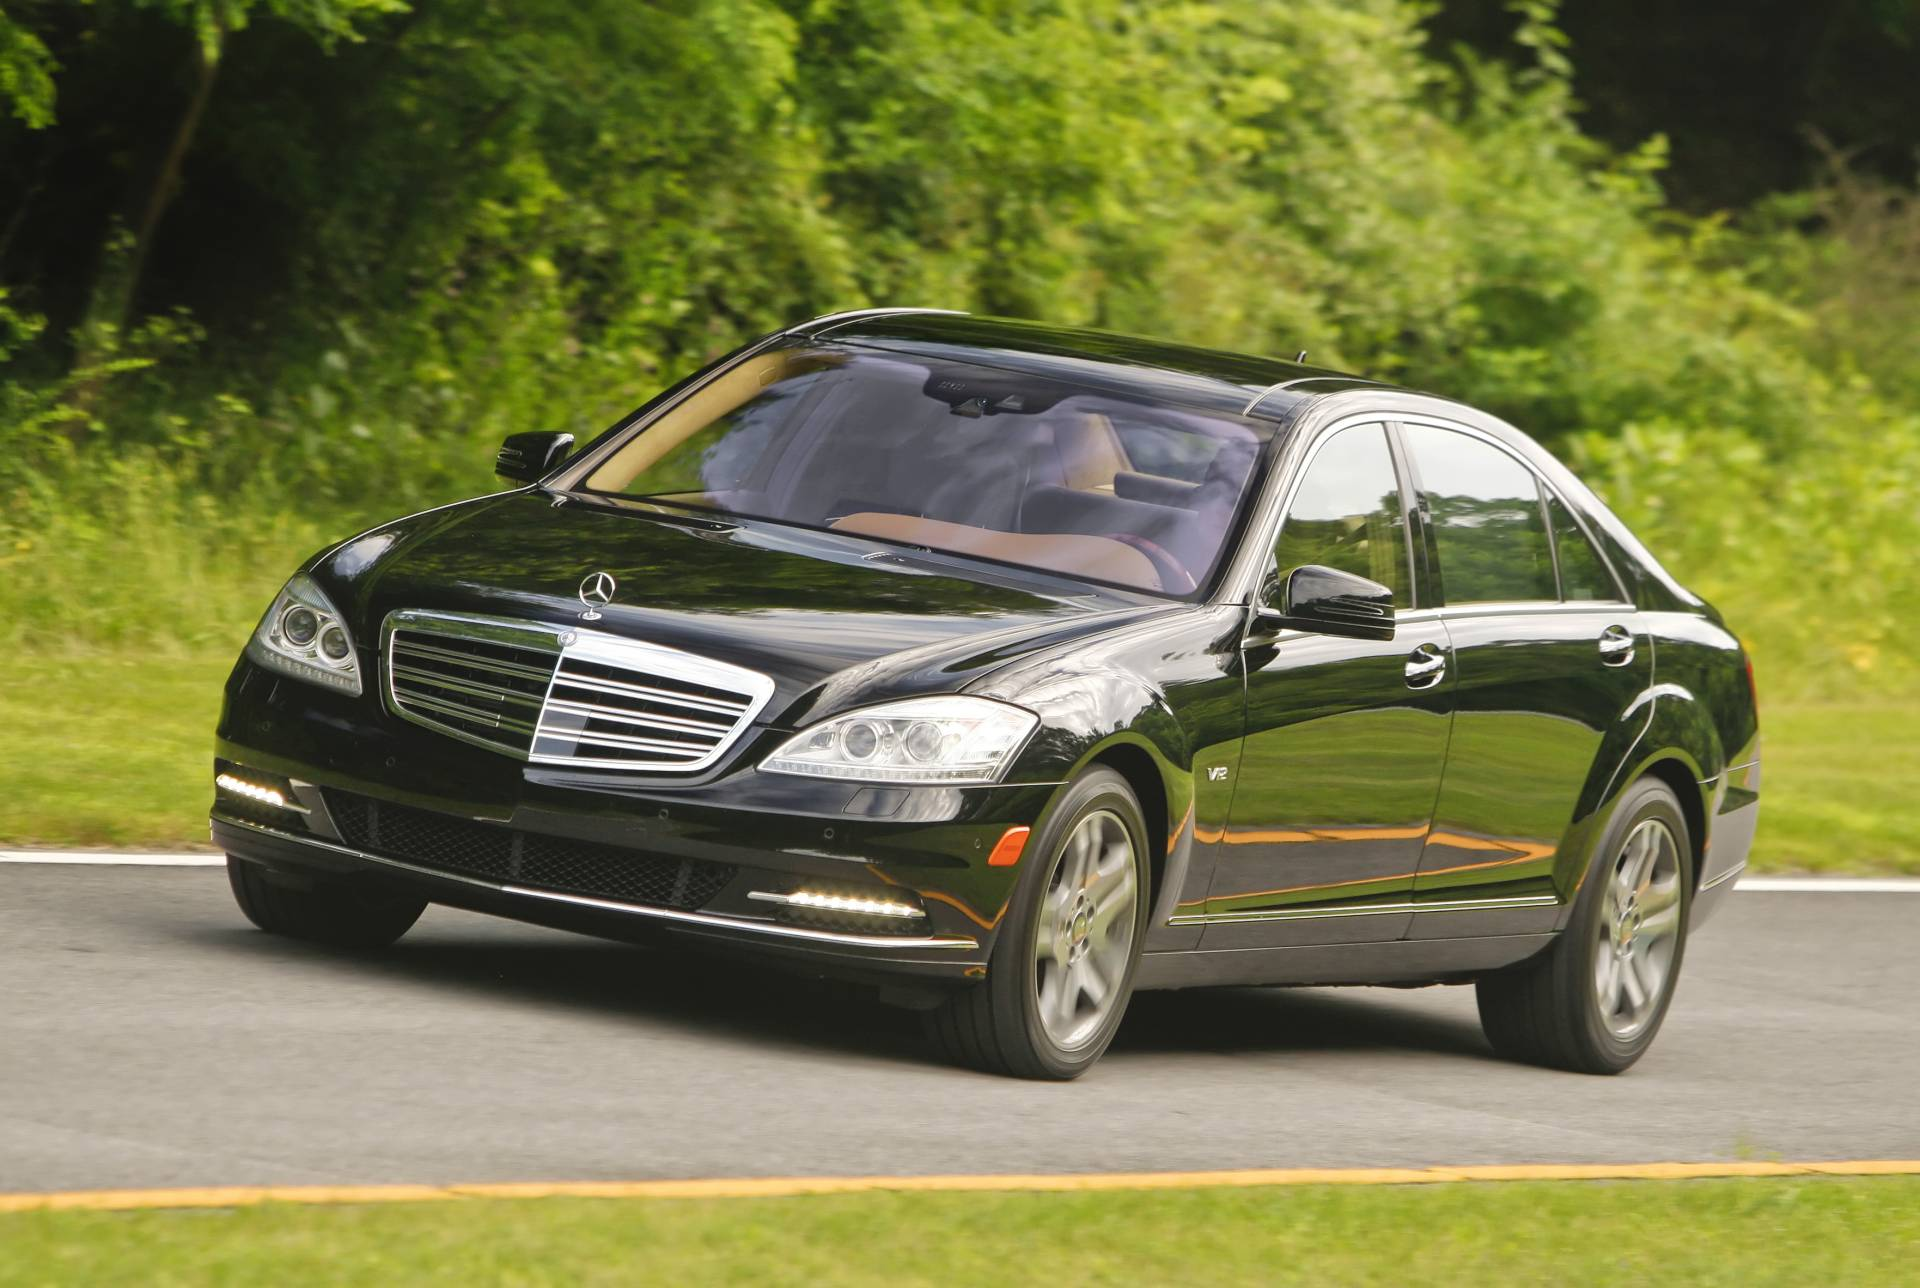 2013 mercedes benz s600 news and information for 2009 mercedes benz s600